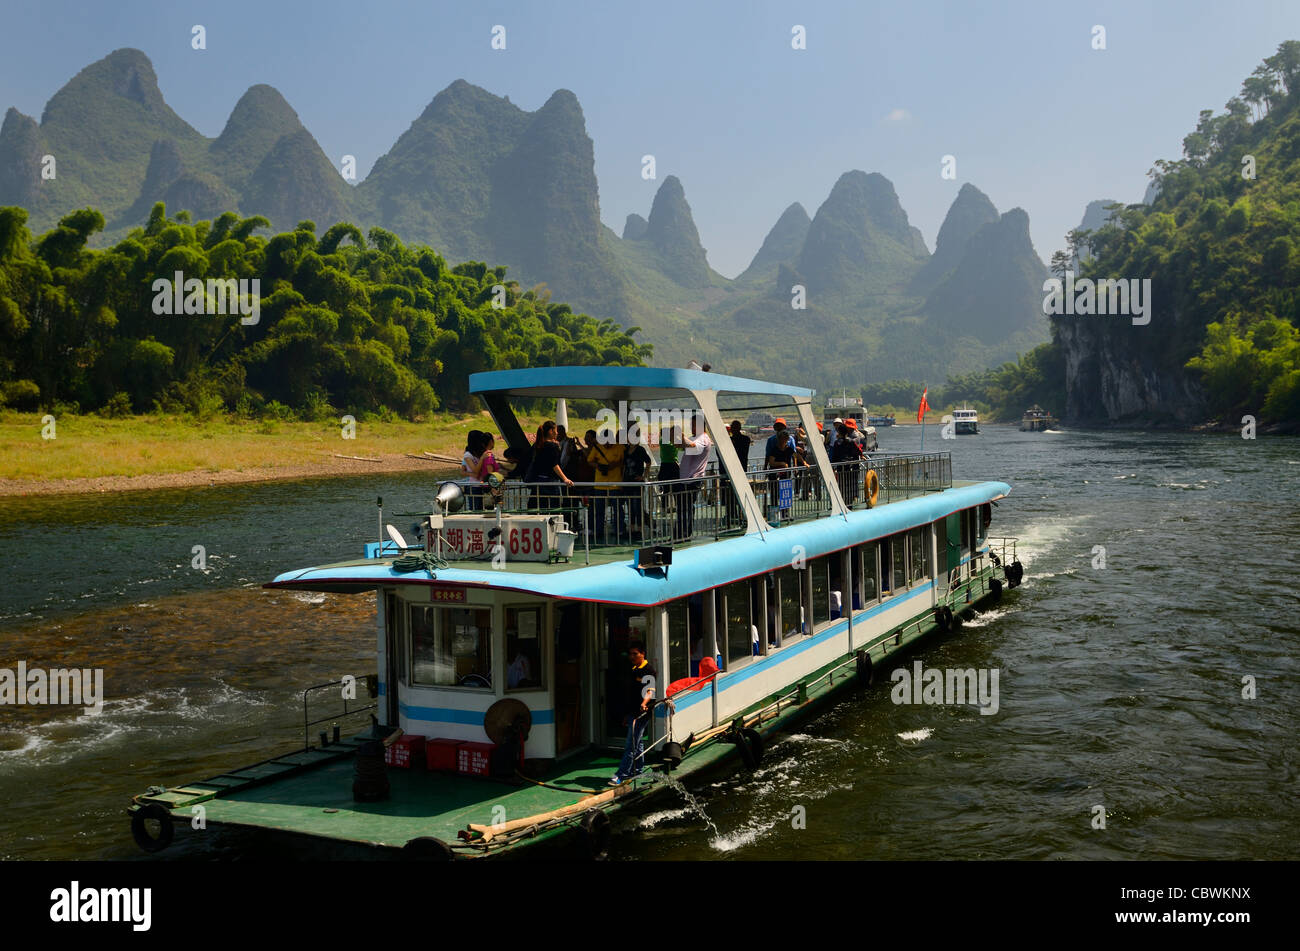 Tour boat cruise down the Li river with bamboo forest and hazy karst peaks Peoples Republic of China - Stock Image